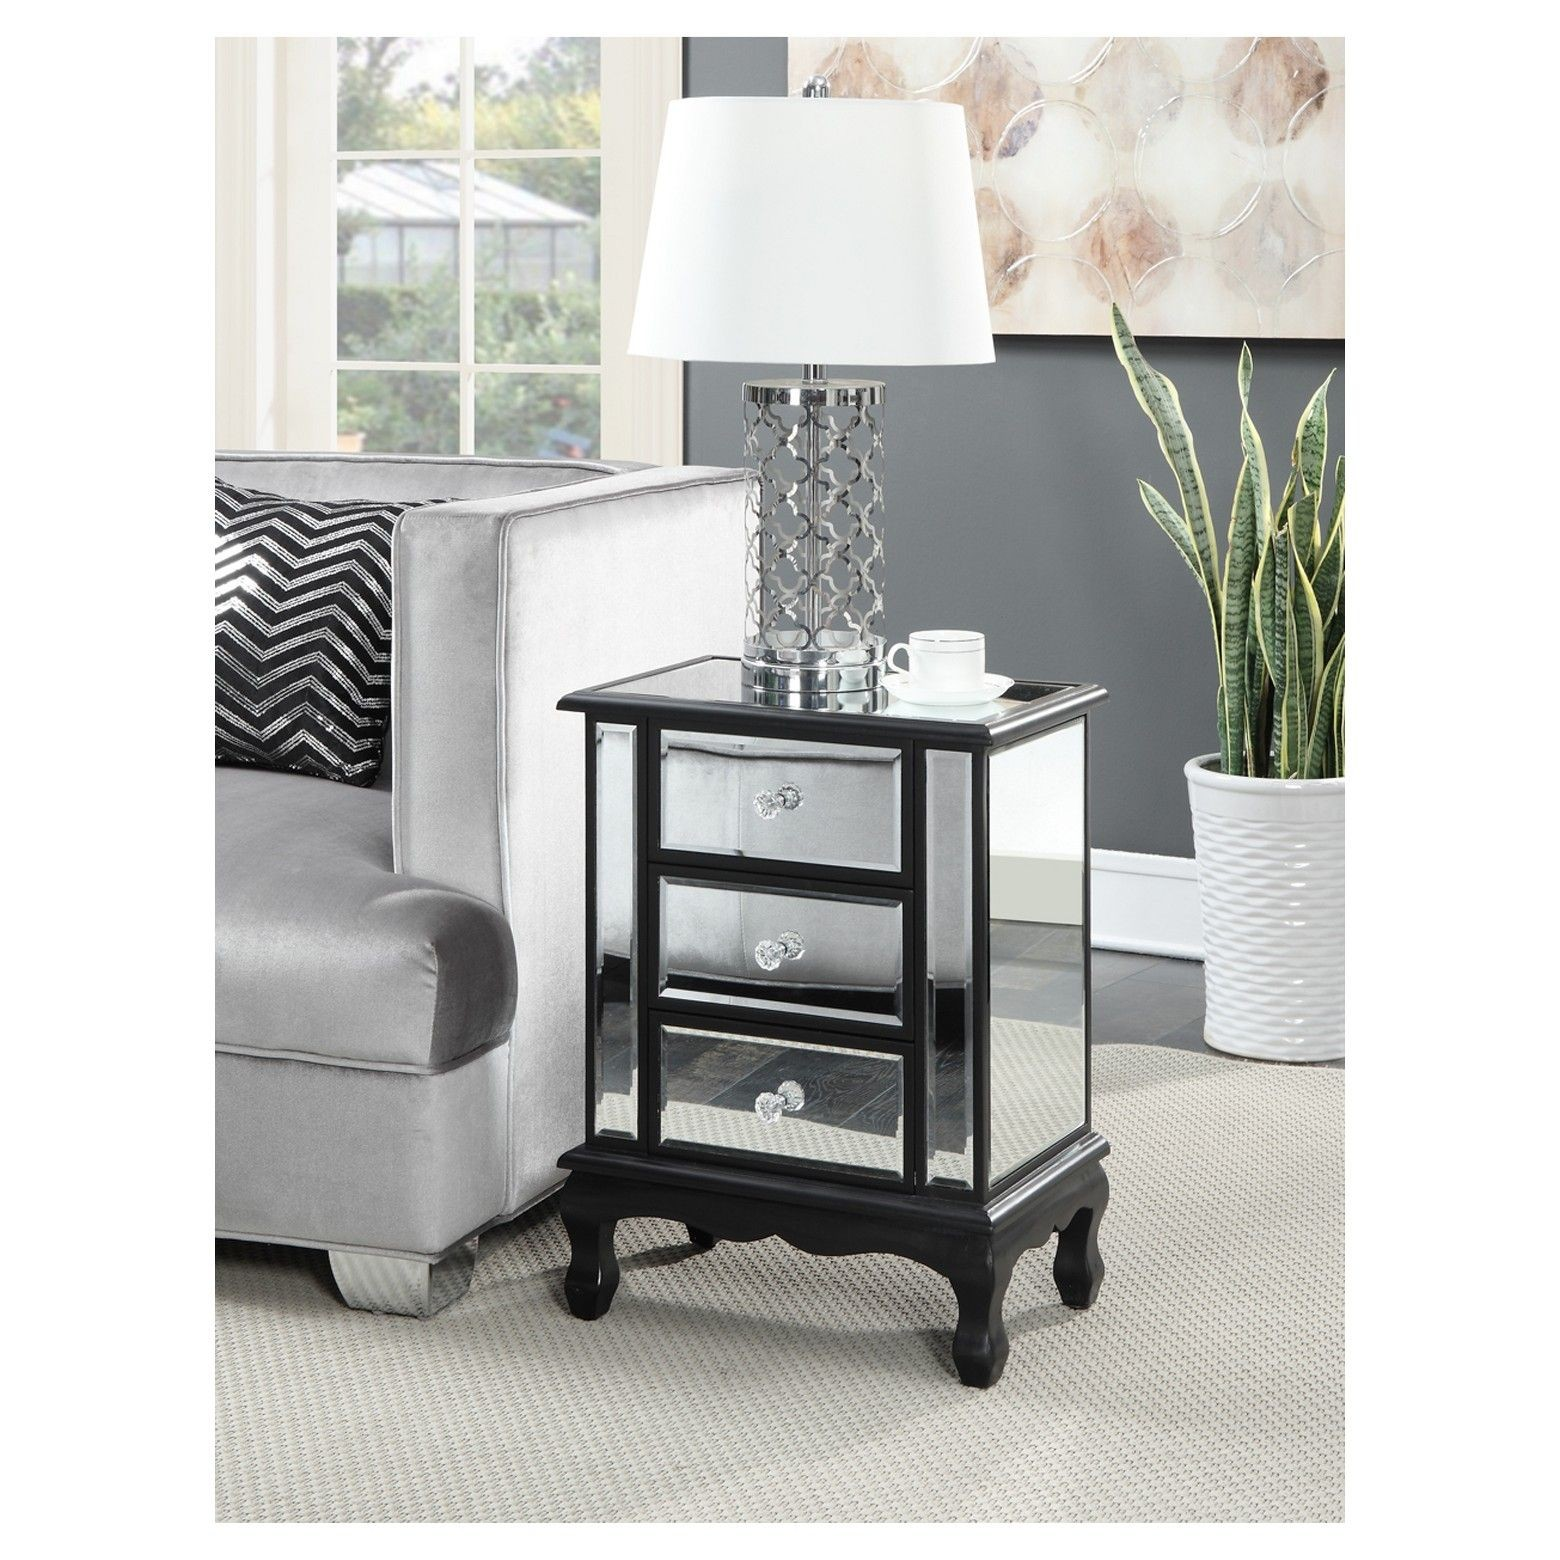 cottage style furniture the fantastic unbelievable threshold home design mirrored nightstand target best awesome convenience concepts gold coast vineyard drawer end table accent